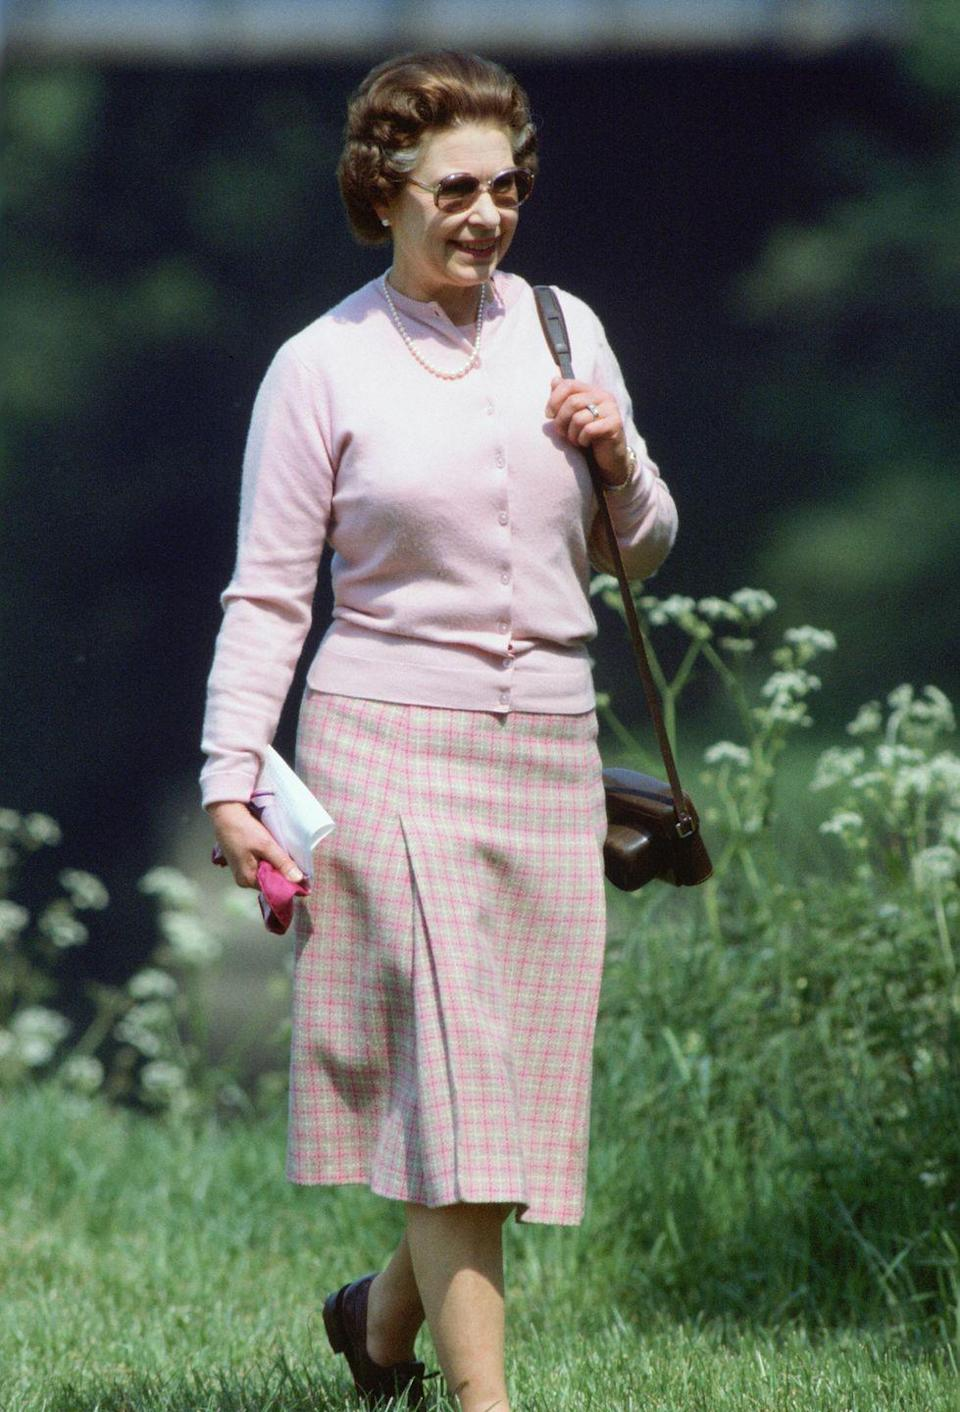 <p>Preppy style perfected: the casual day look the Queen walked the grounds of Windsor Castle in, in May, 1982.</p>